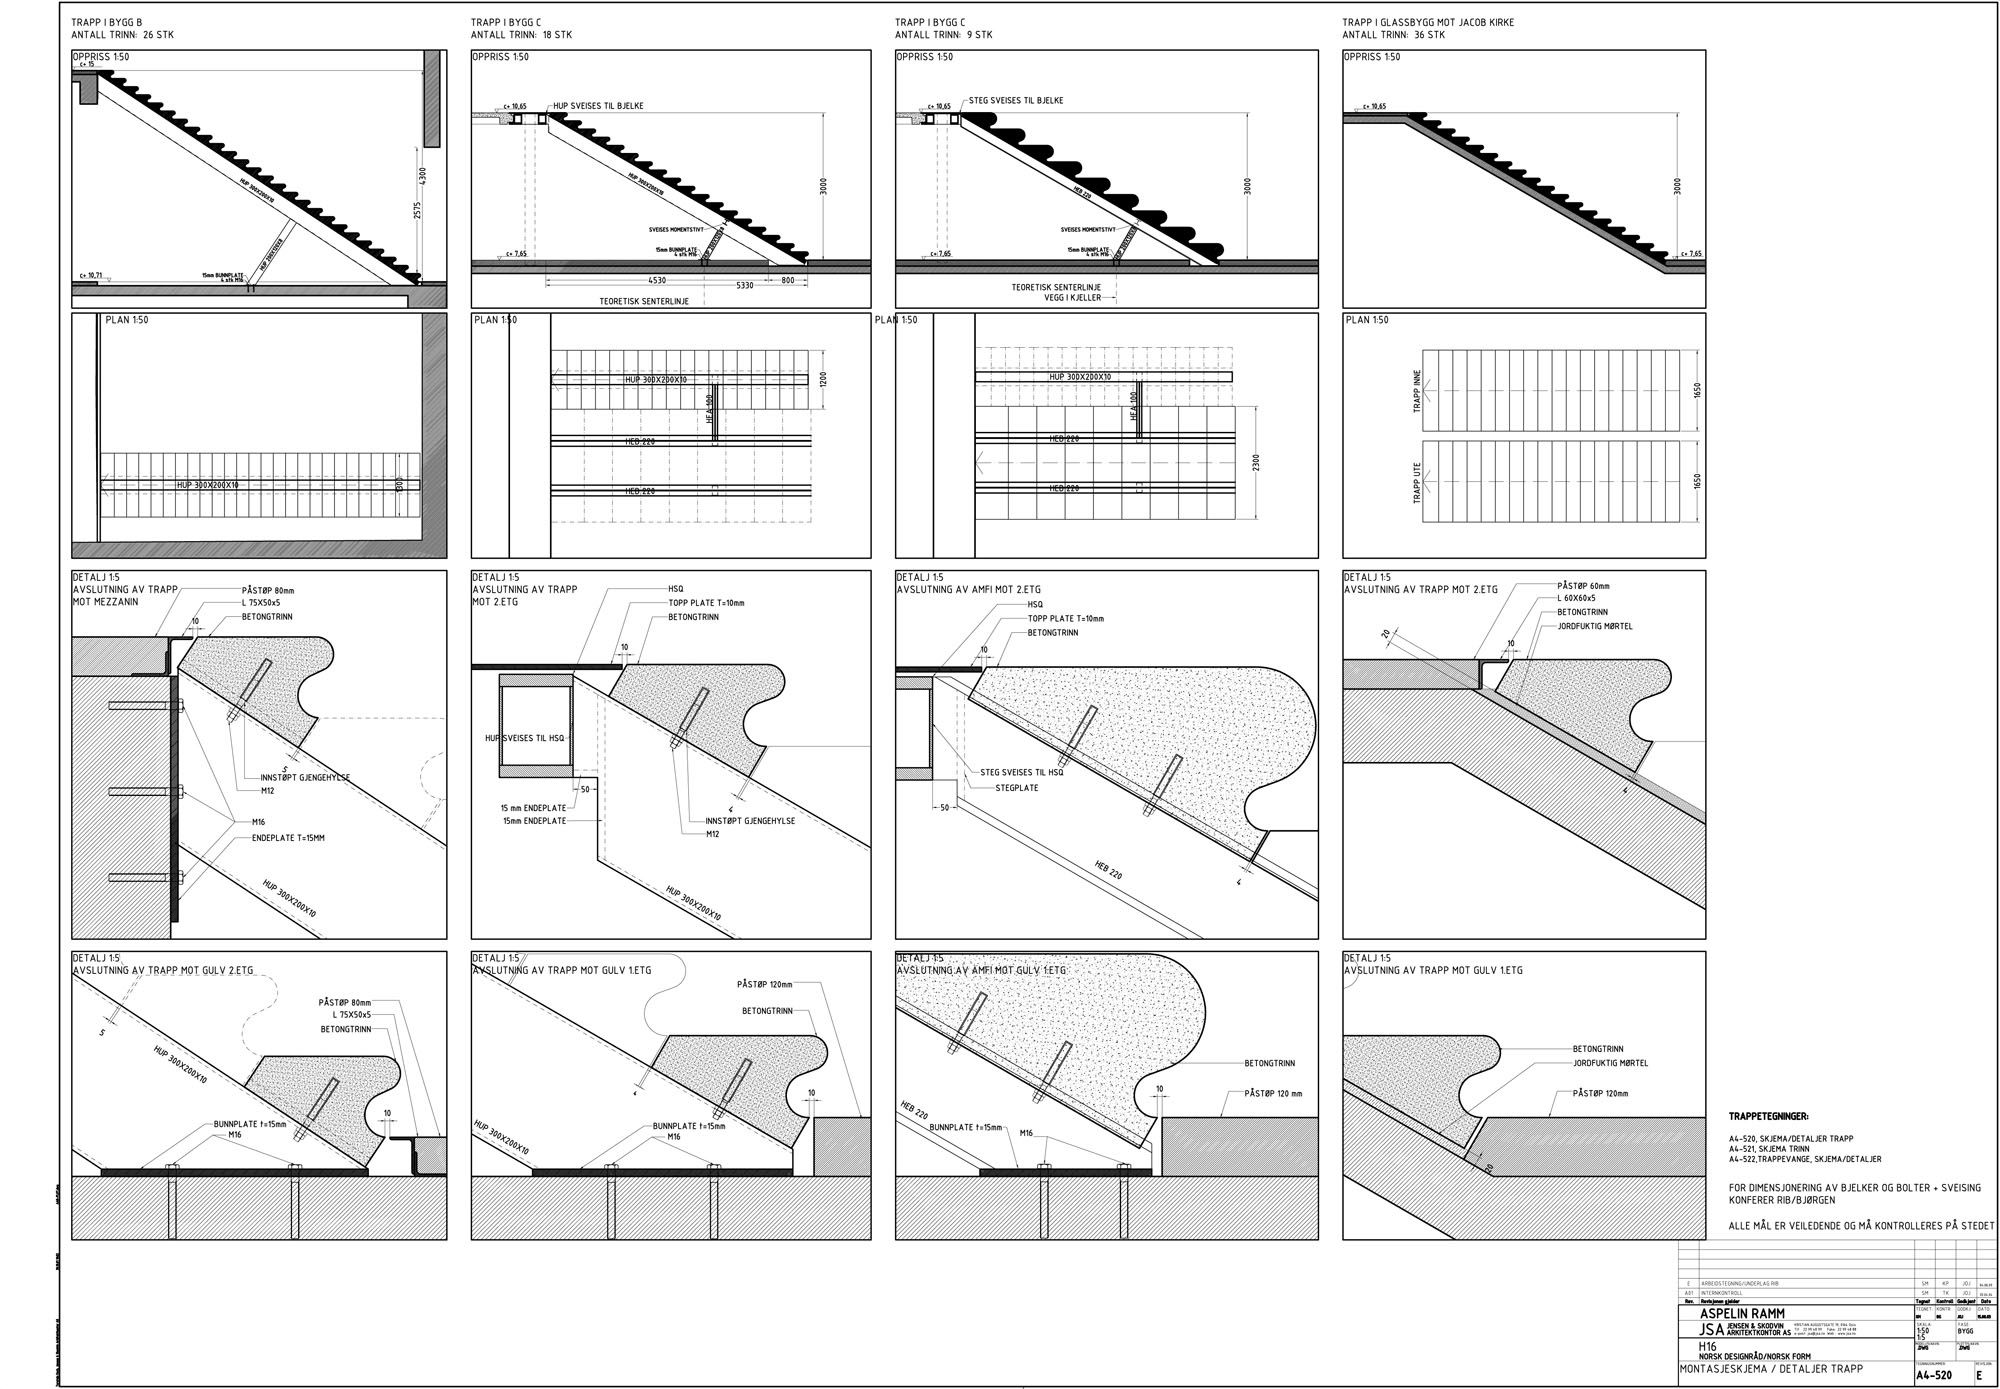 Stairs drawing related keywords amp suggestions stairs drawing - Front Elevation Stairs In Plan Stairs Pinned By Www Modlar Com Architecture Pinterest Front Elevation Rem Koolhaas And Architecture